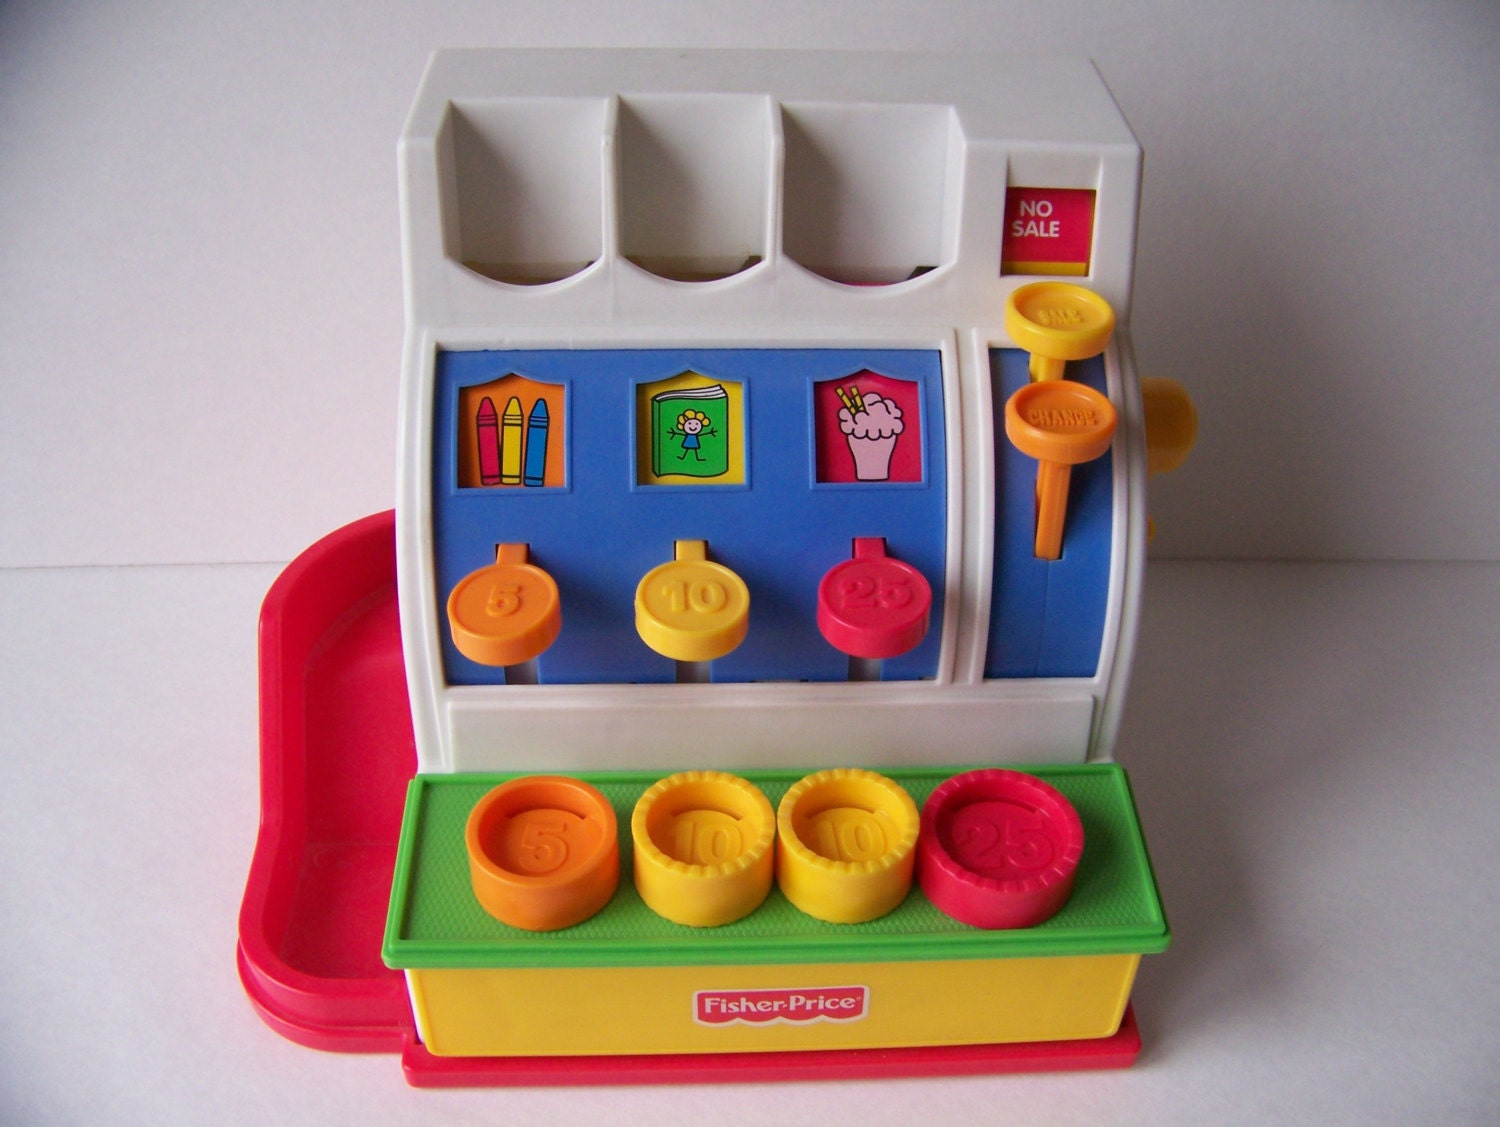 vintage fisher price cash register 1994 toy cash register. Black Bedroom Furniture Sets. Home Design Ideas